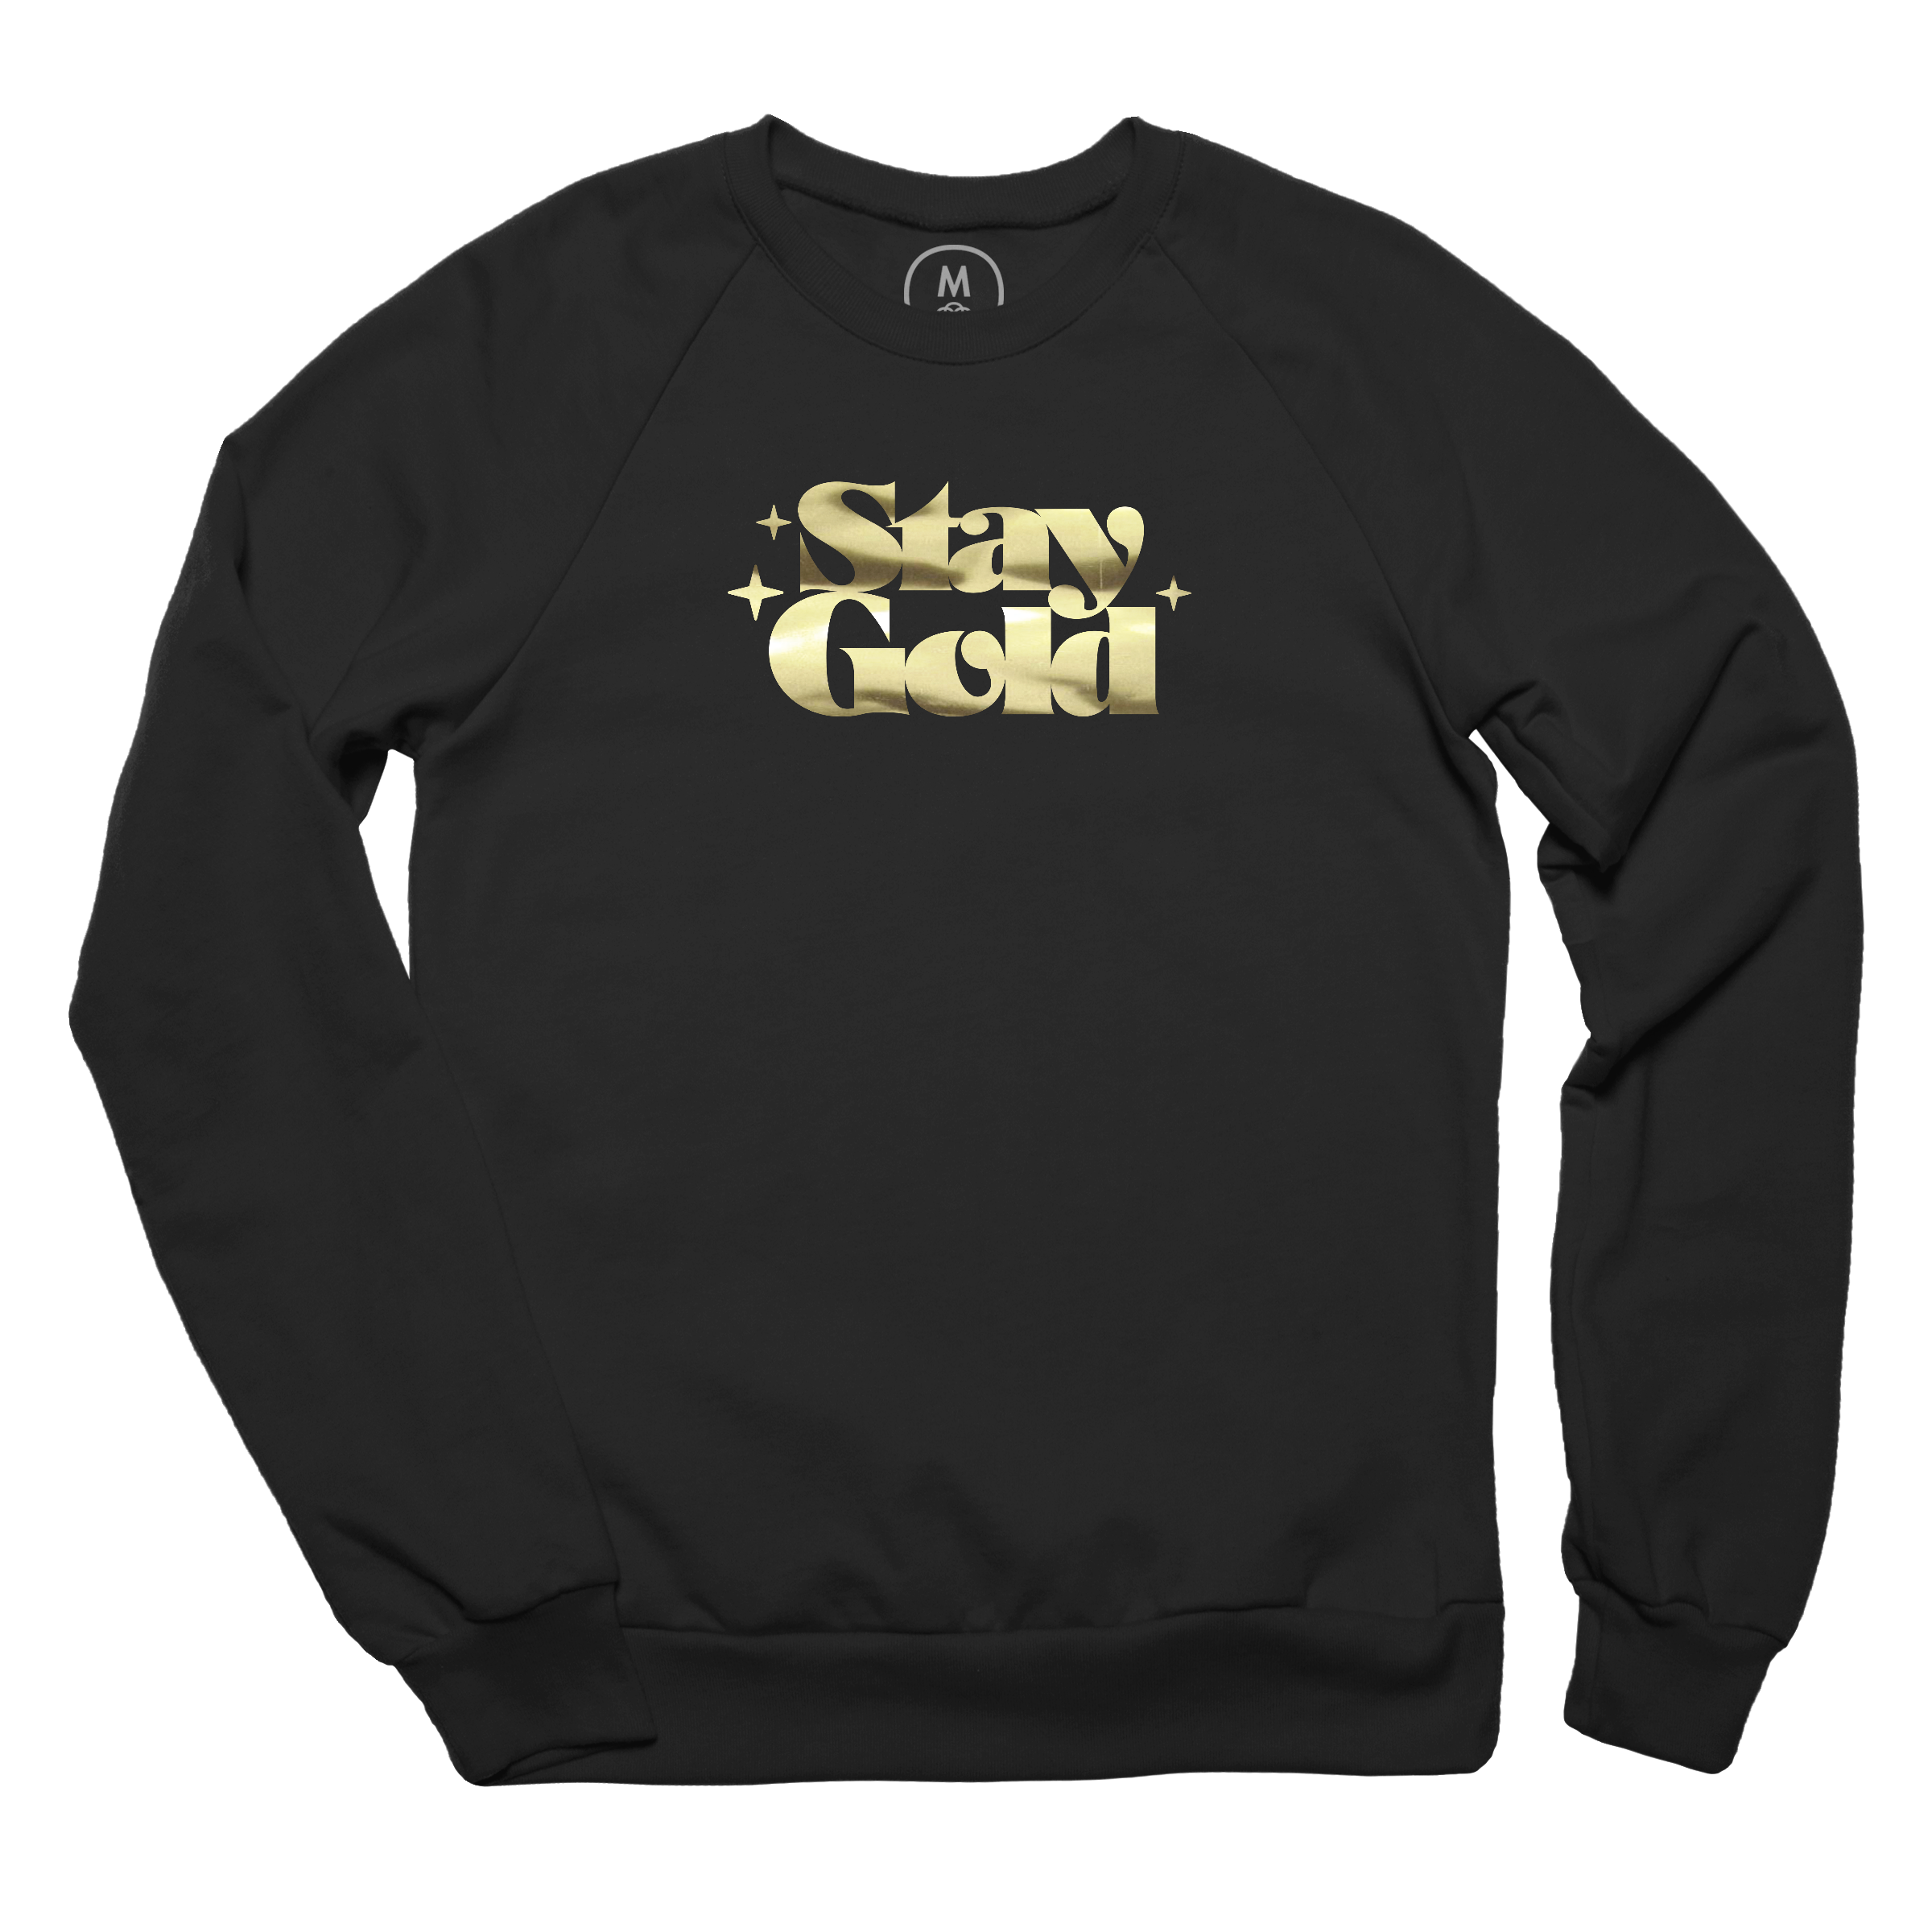 Stay Gold Pullover Crewneck